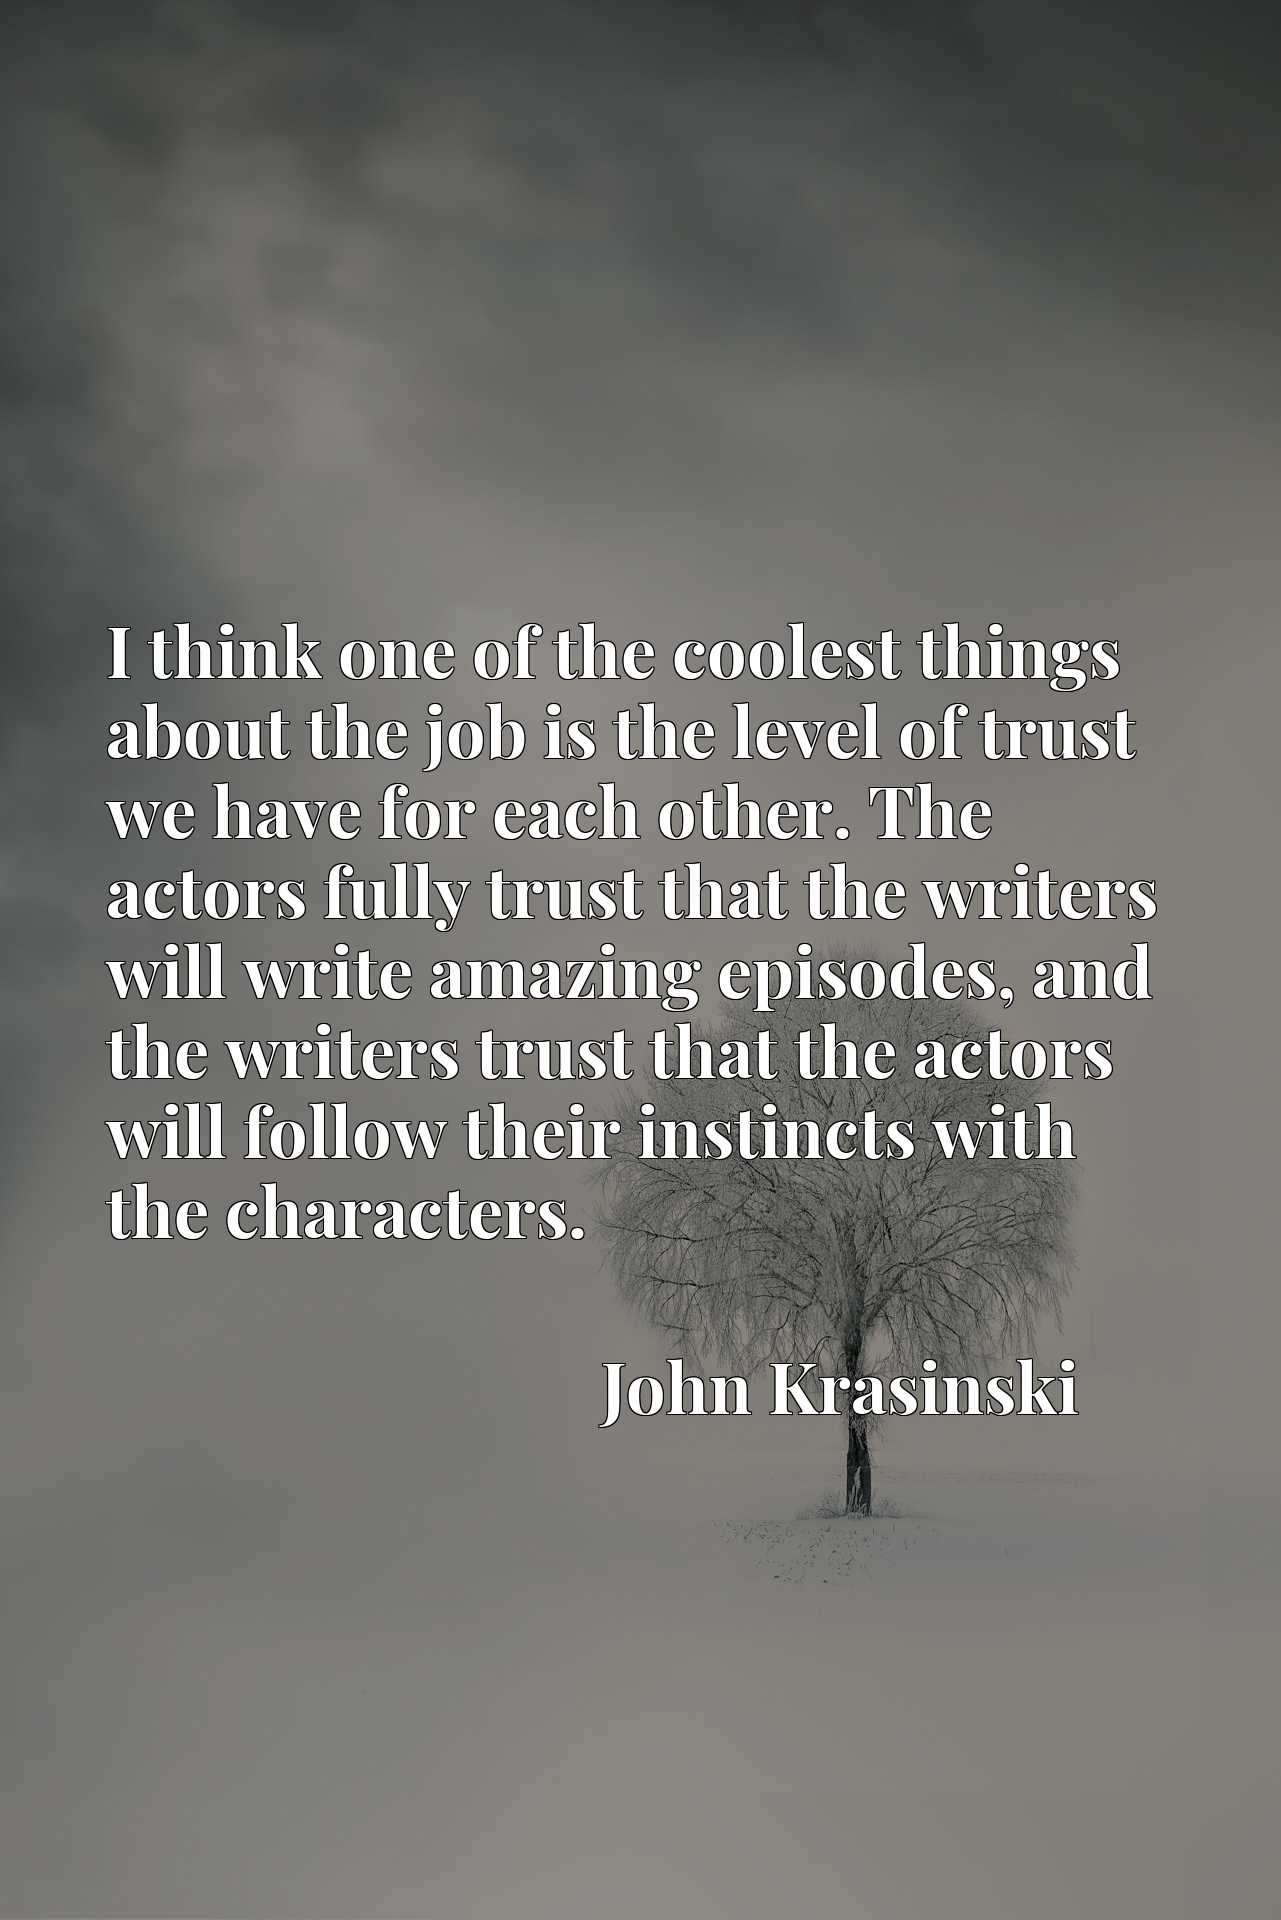 Quote Picture :I think one of the coolest things about the job is the level of trust we have for each other. The actors fully trust that the writers will write amazing episodes, and the writers trust that the actors will follow their instincts with the characters.